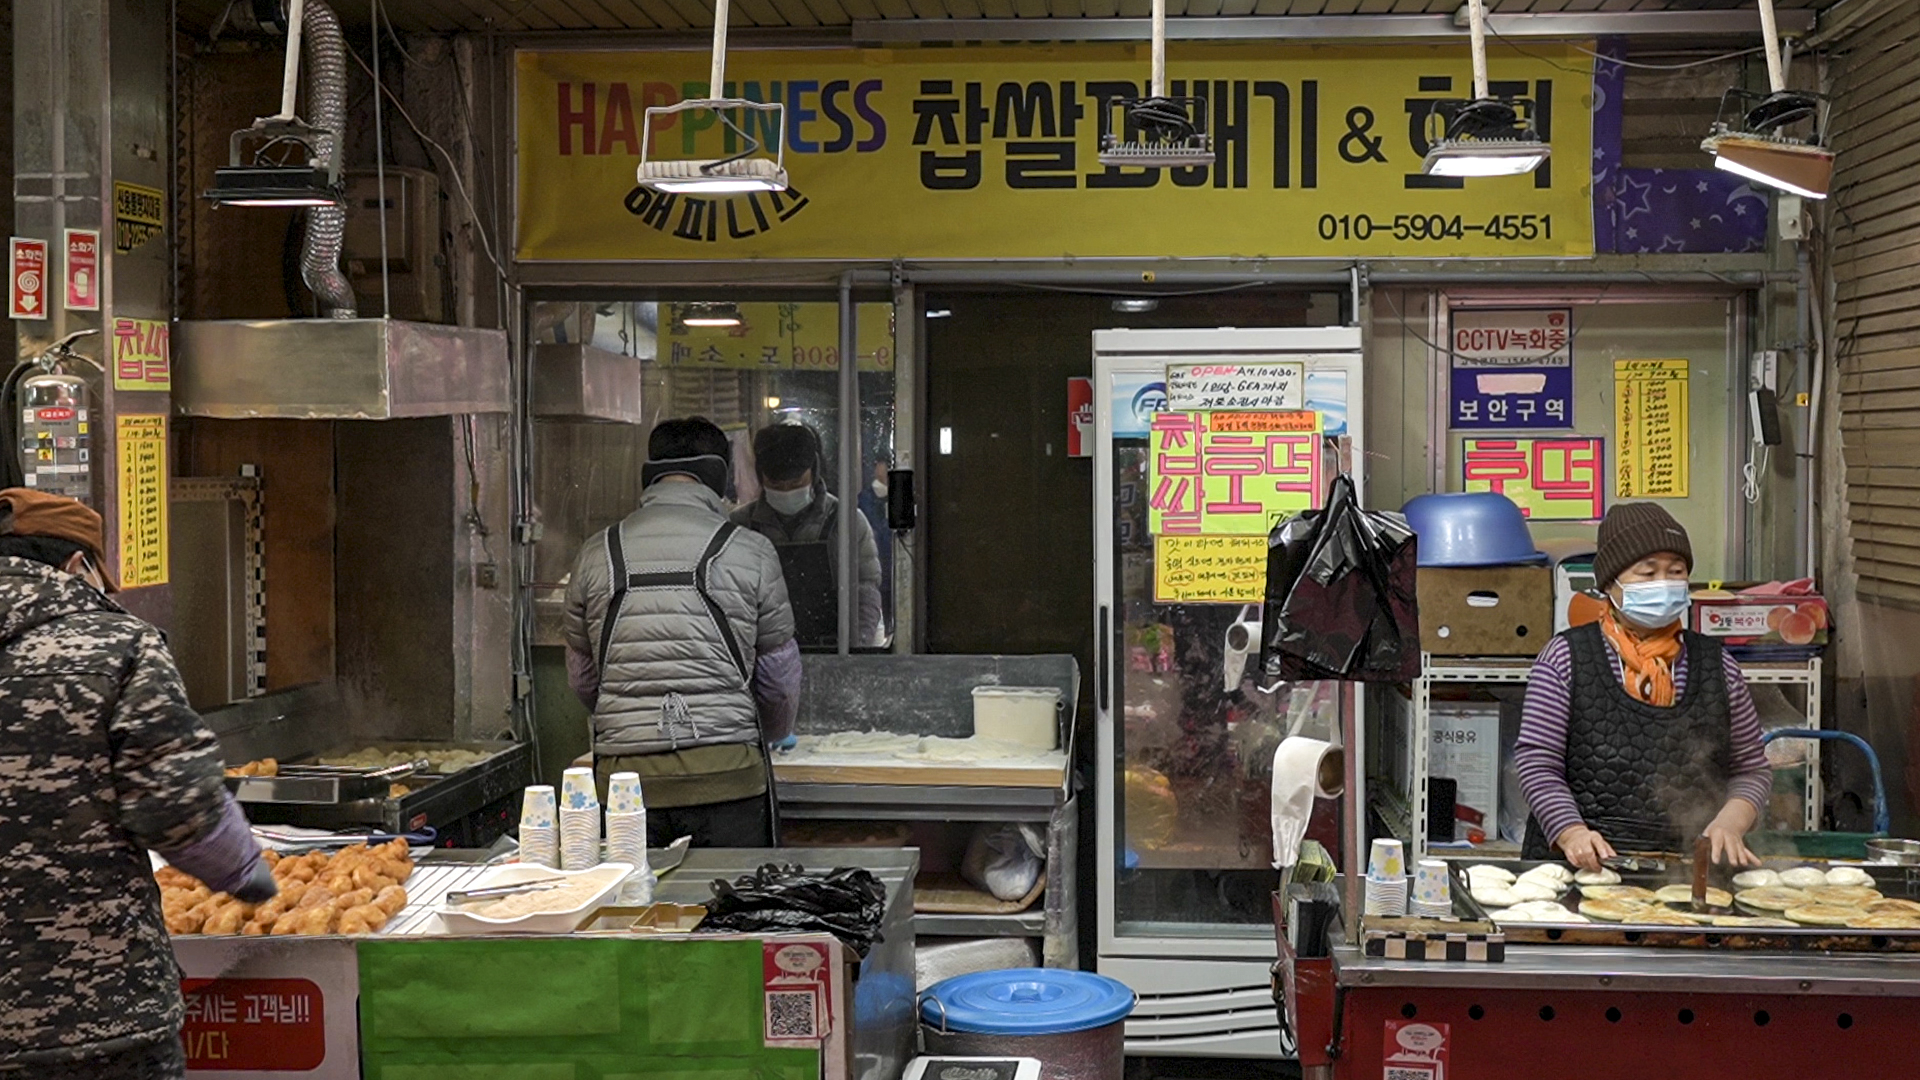 해피니스 찹쌀꽈배기┃Twisted Doughnuts┃Korean Street Food